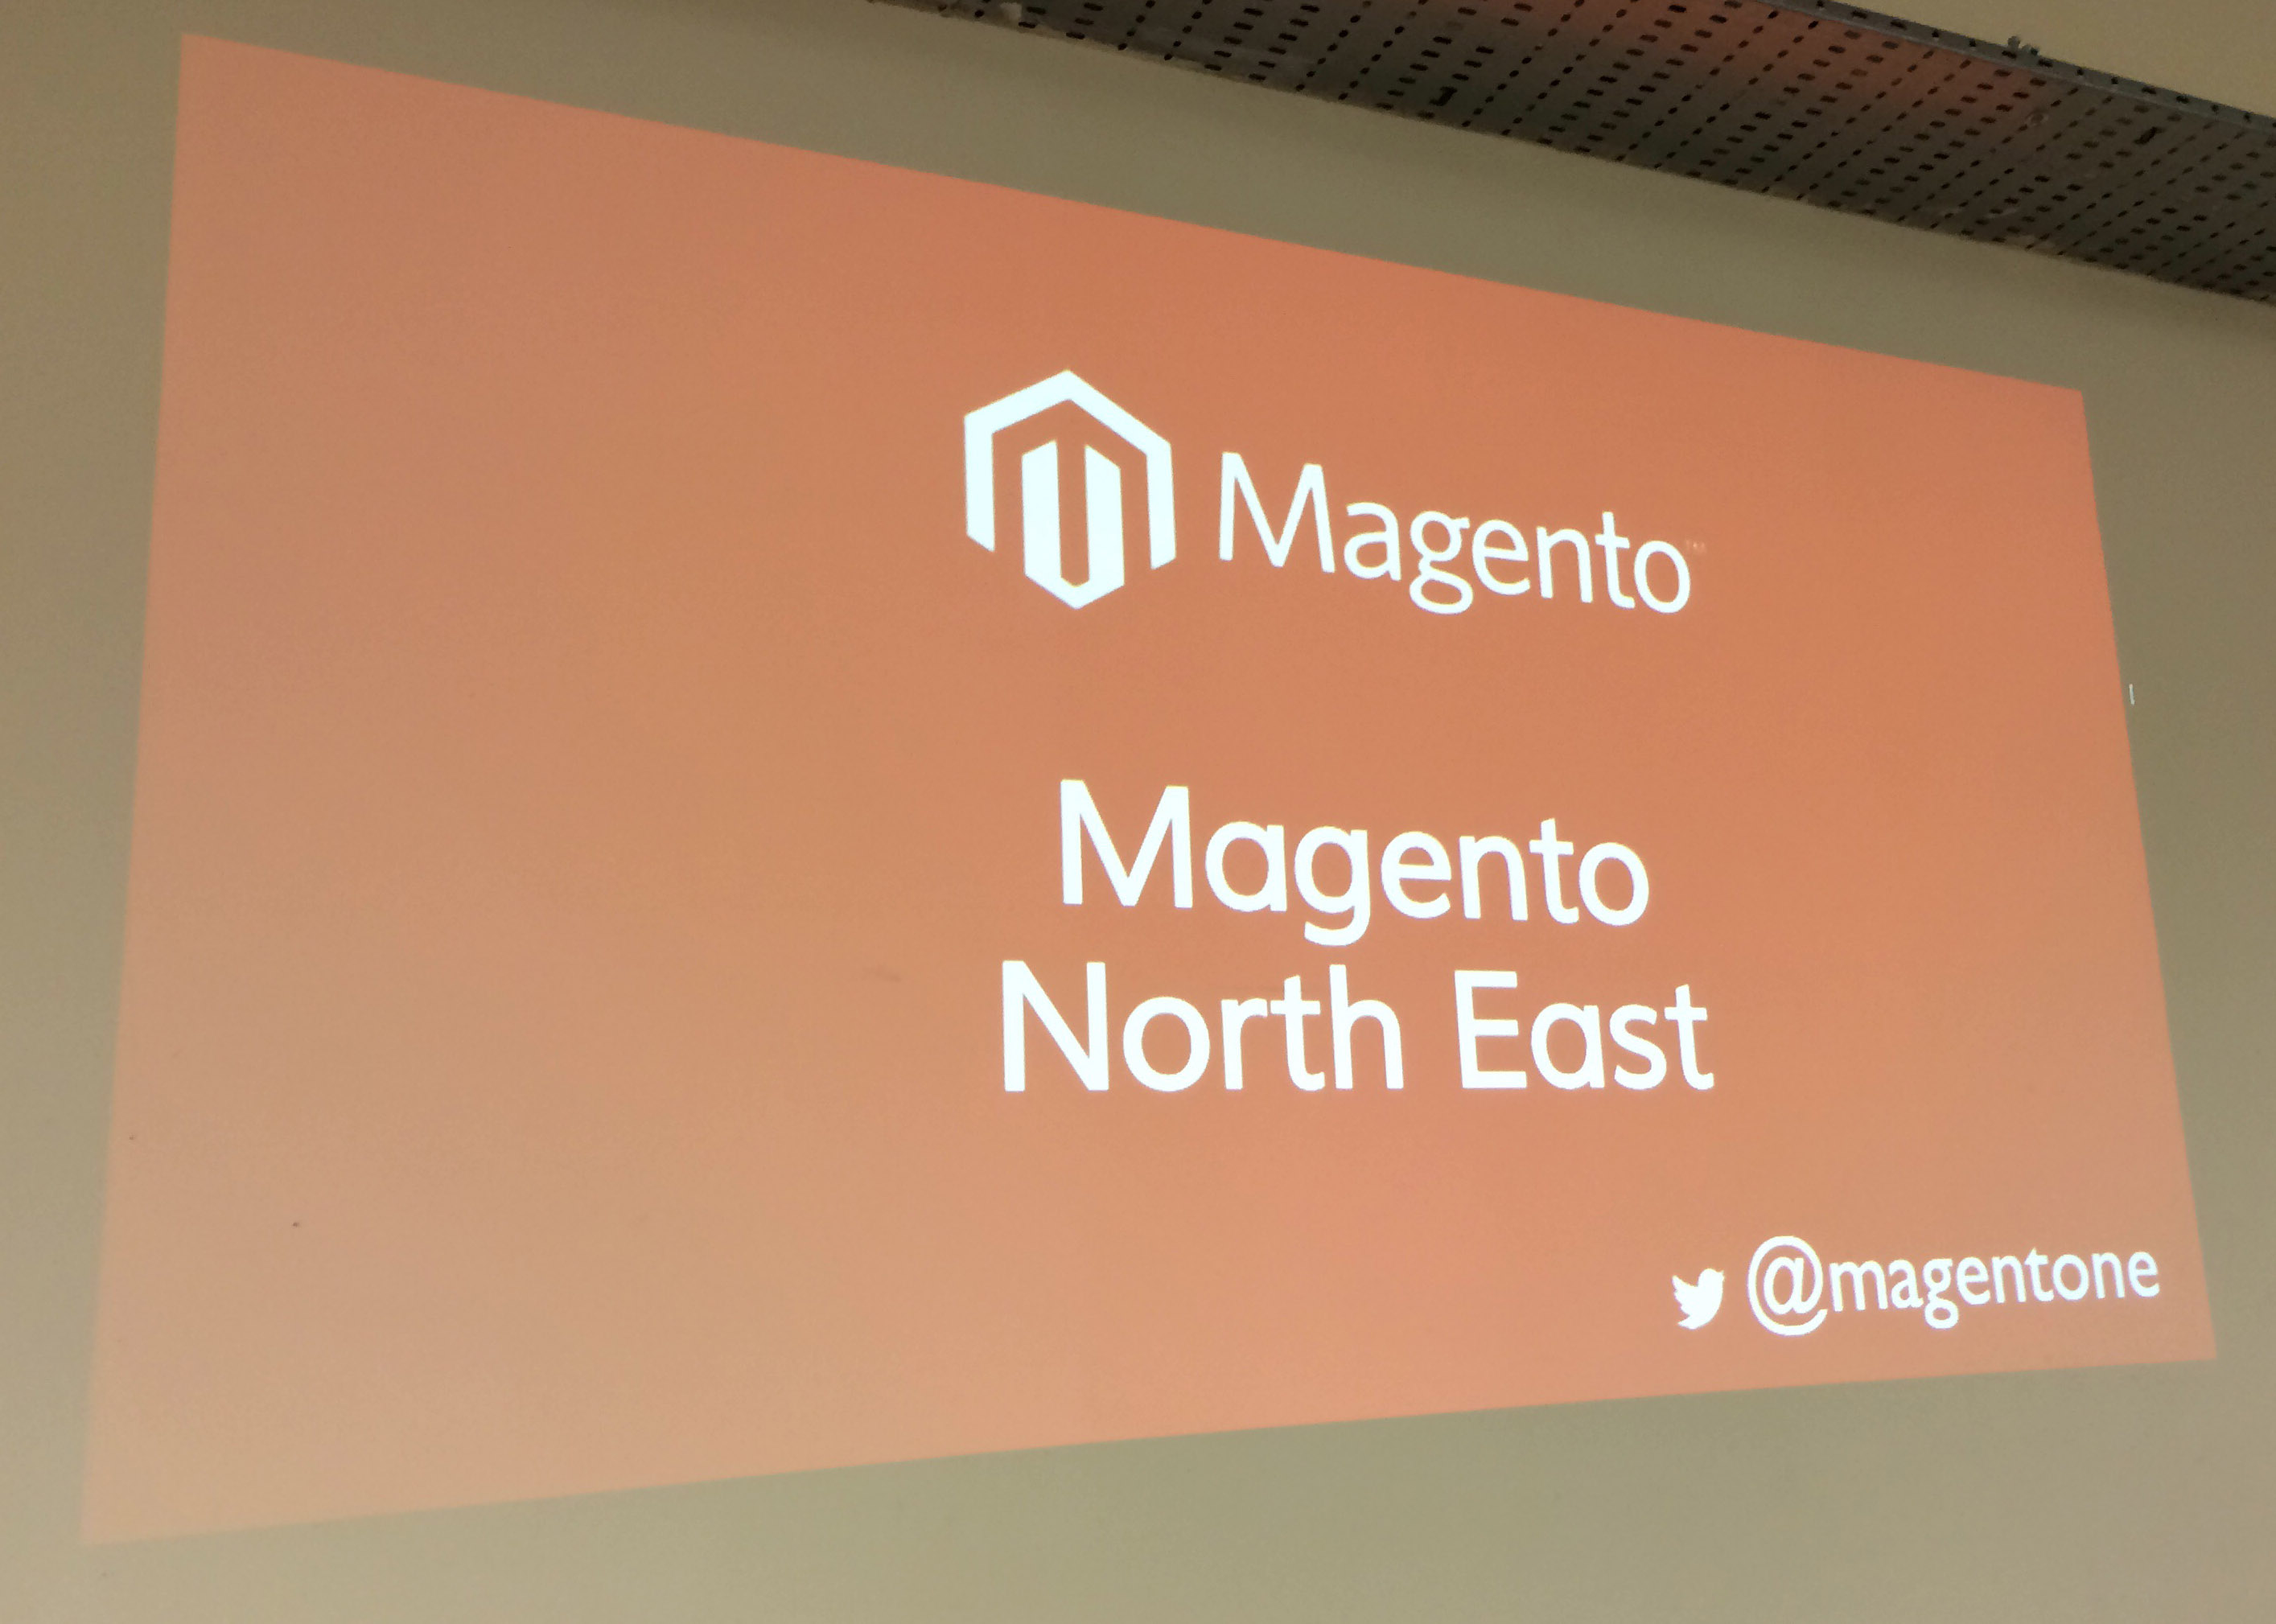 Magento North East event in Newcastle upon Tyne